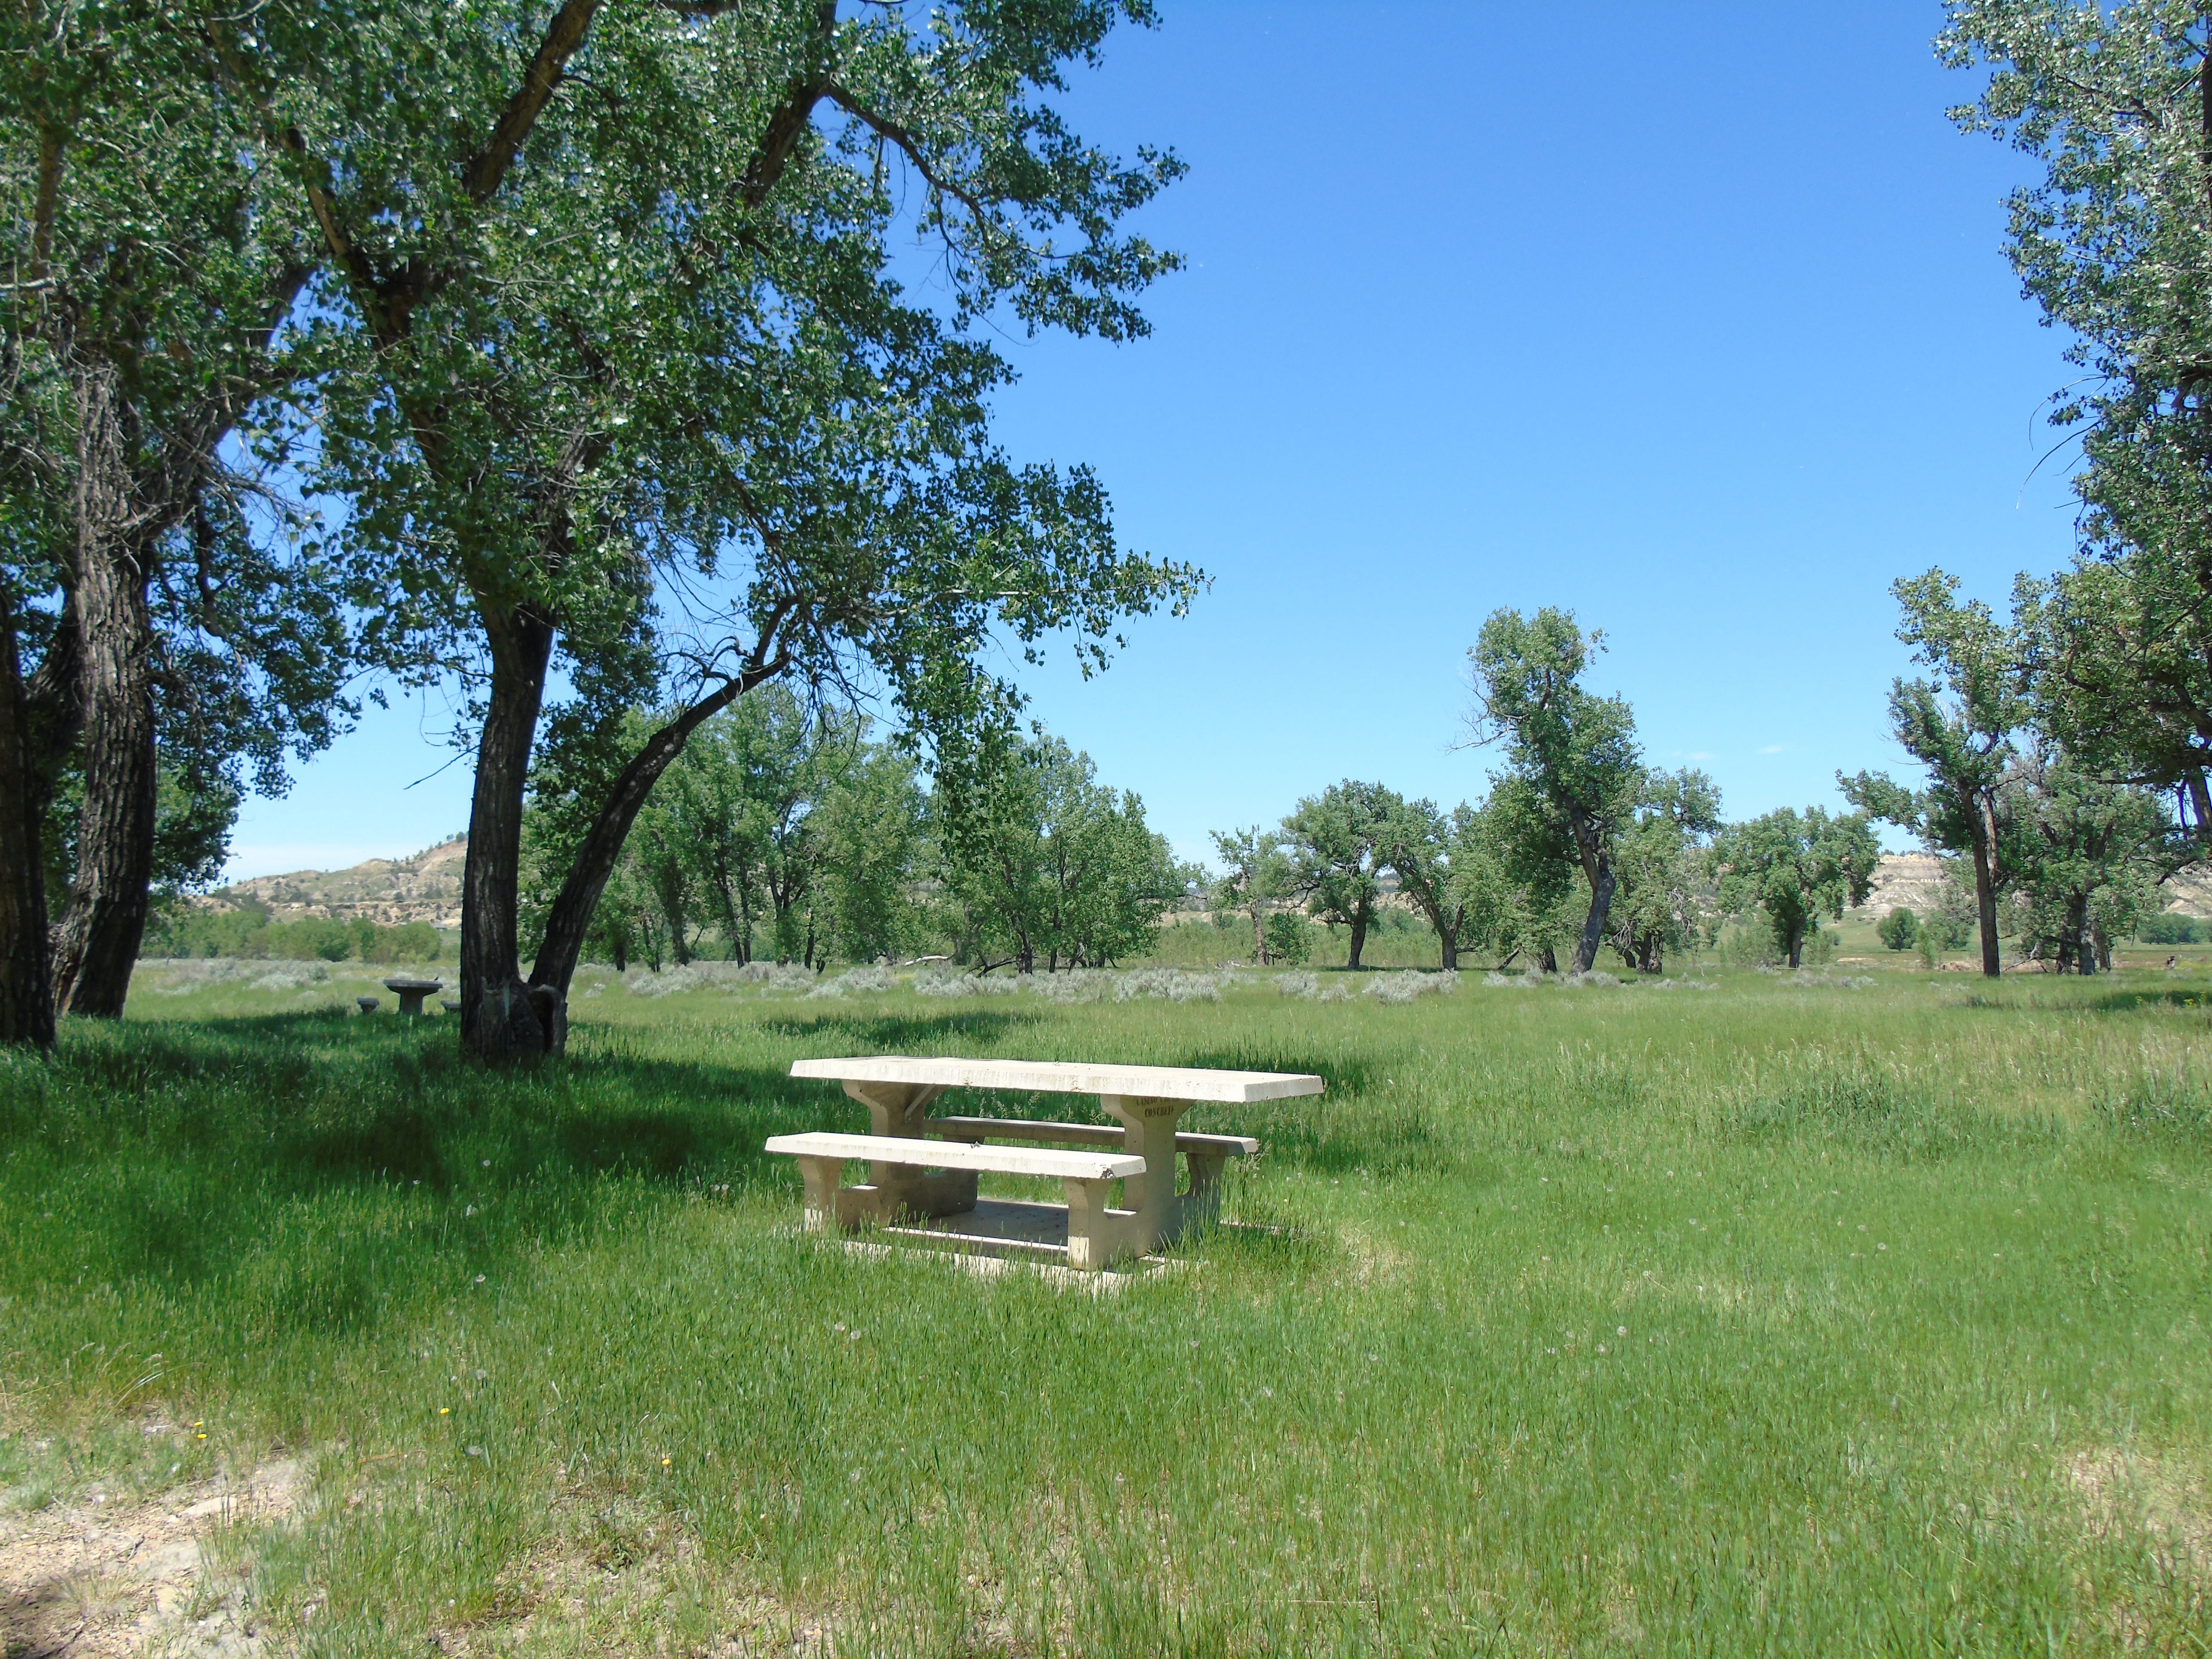 The Moorehead Recreation Area is past Moorehead and just north of Wyoming along the Powder River.